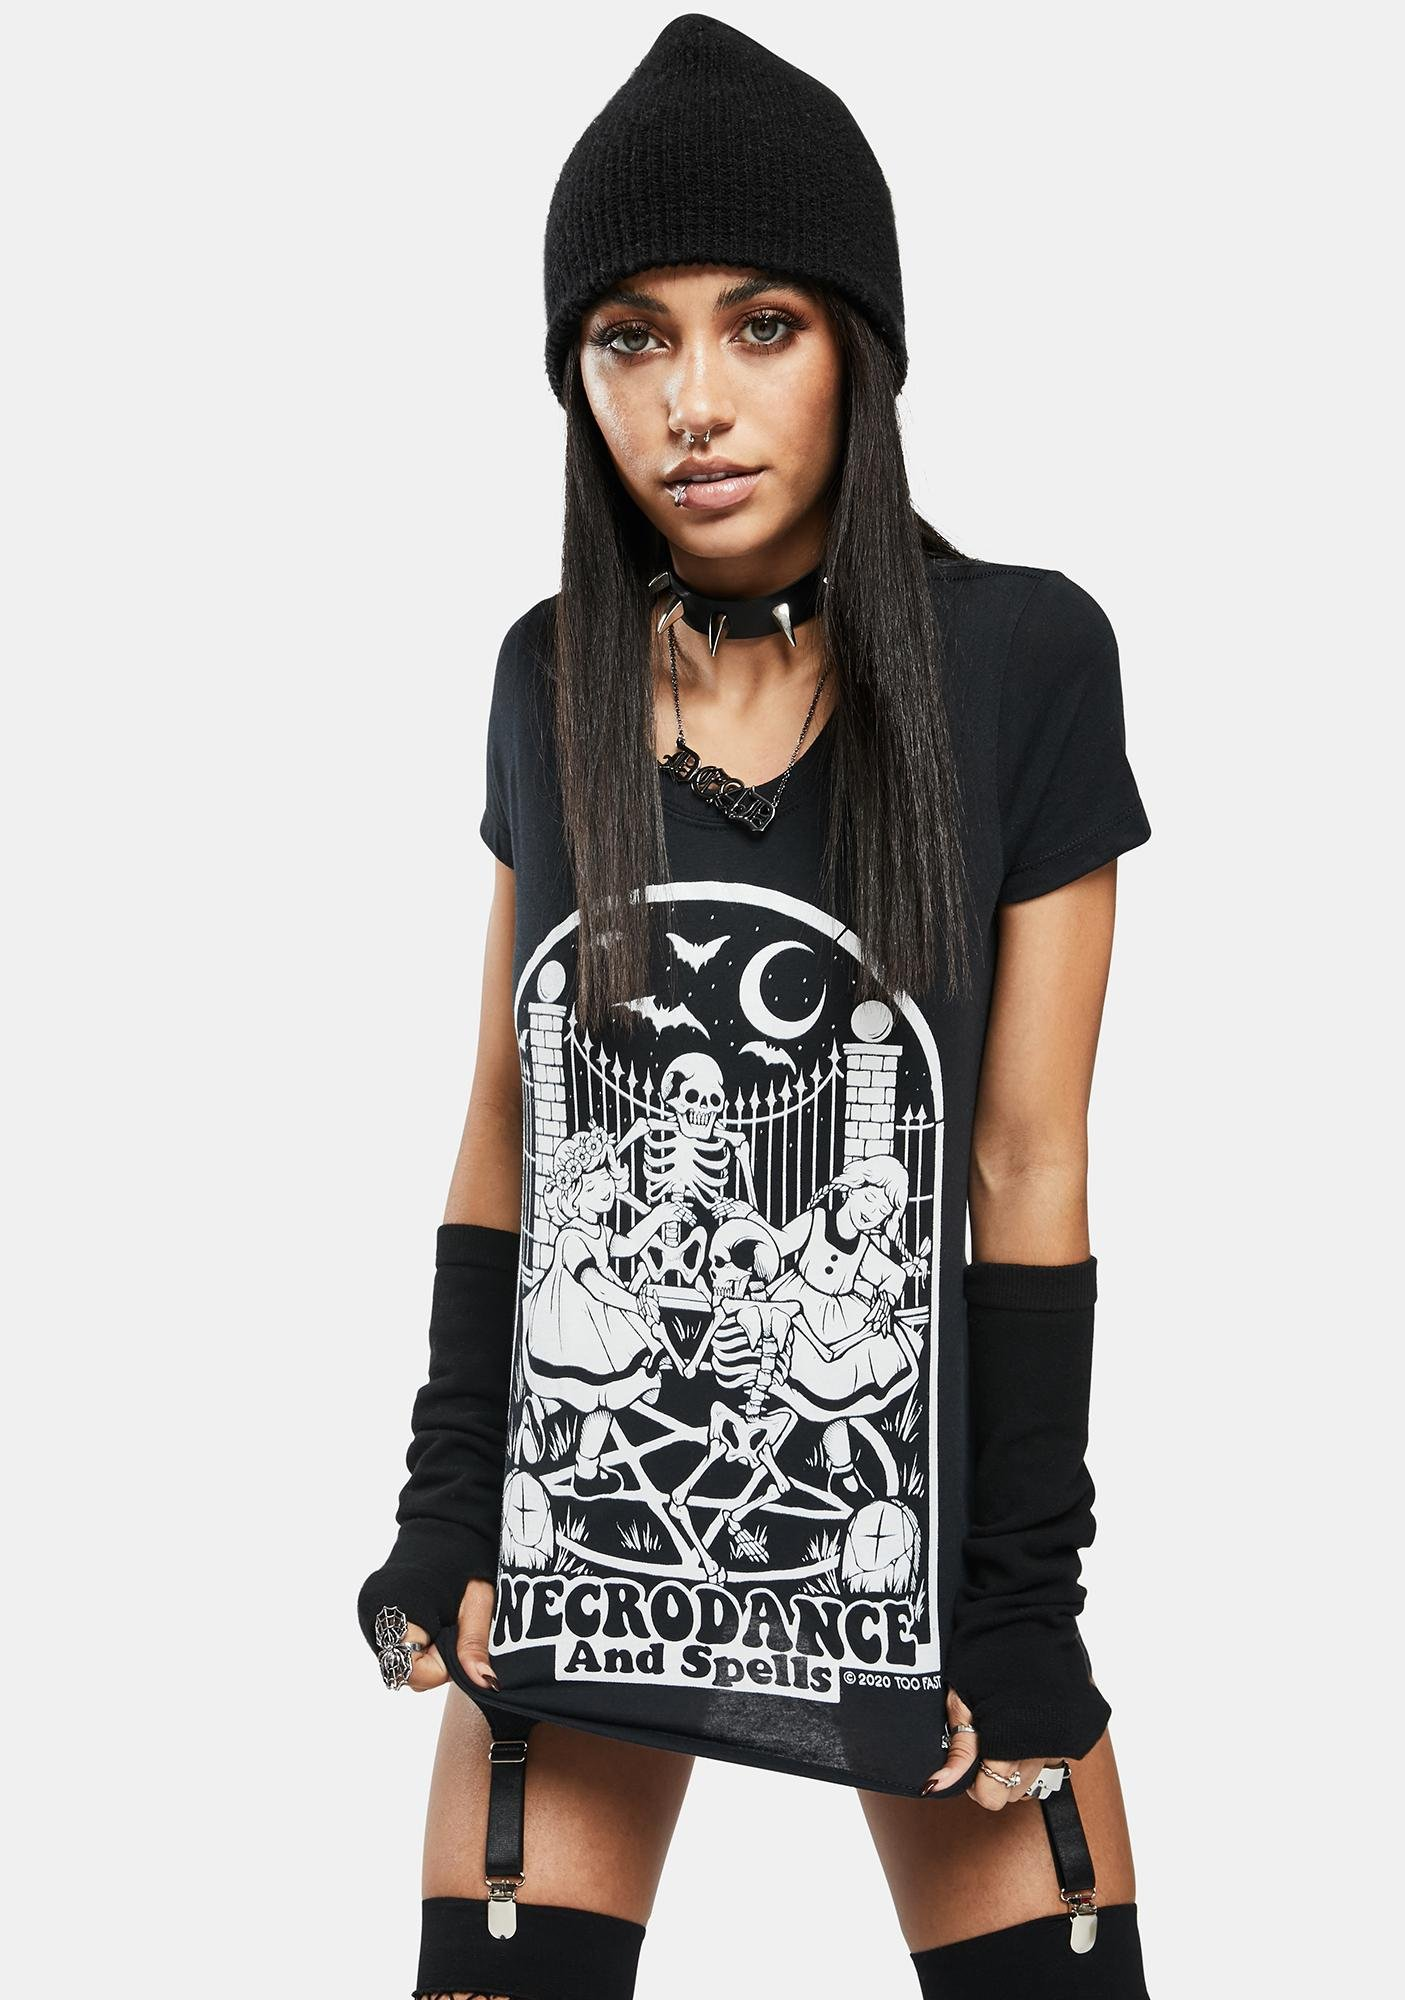 Too Fast Necrodance And Spells Graphic Tee